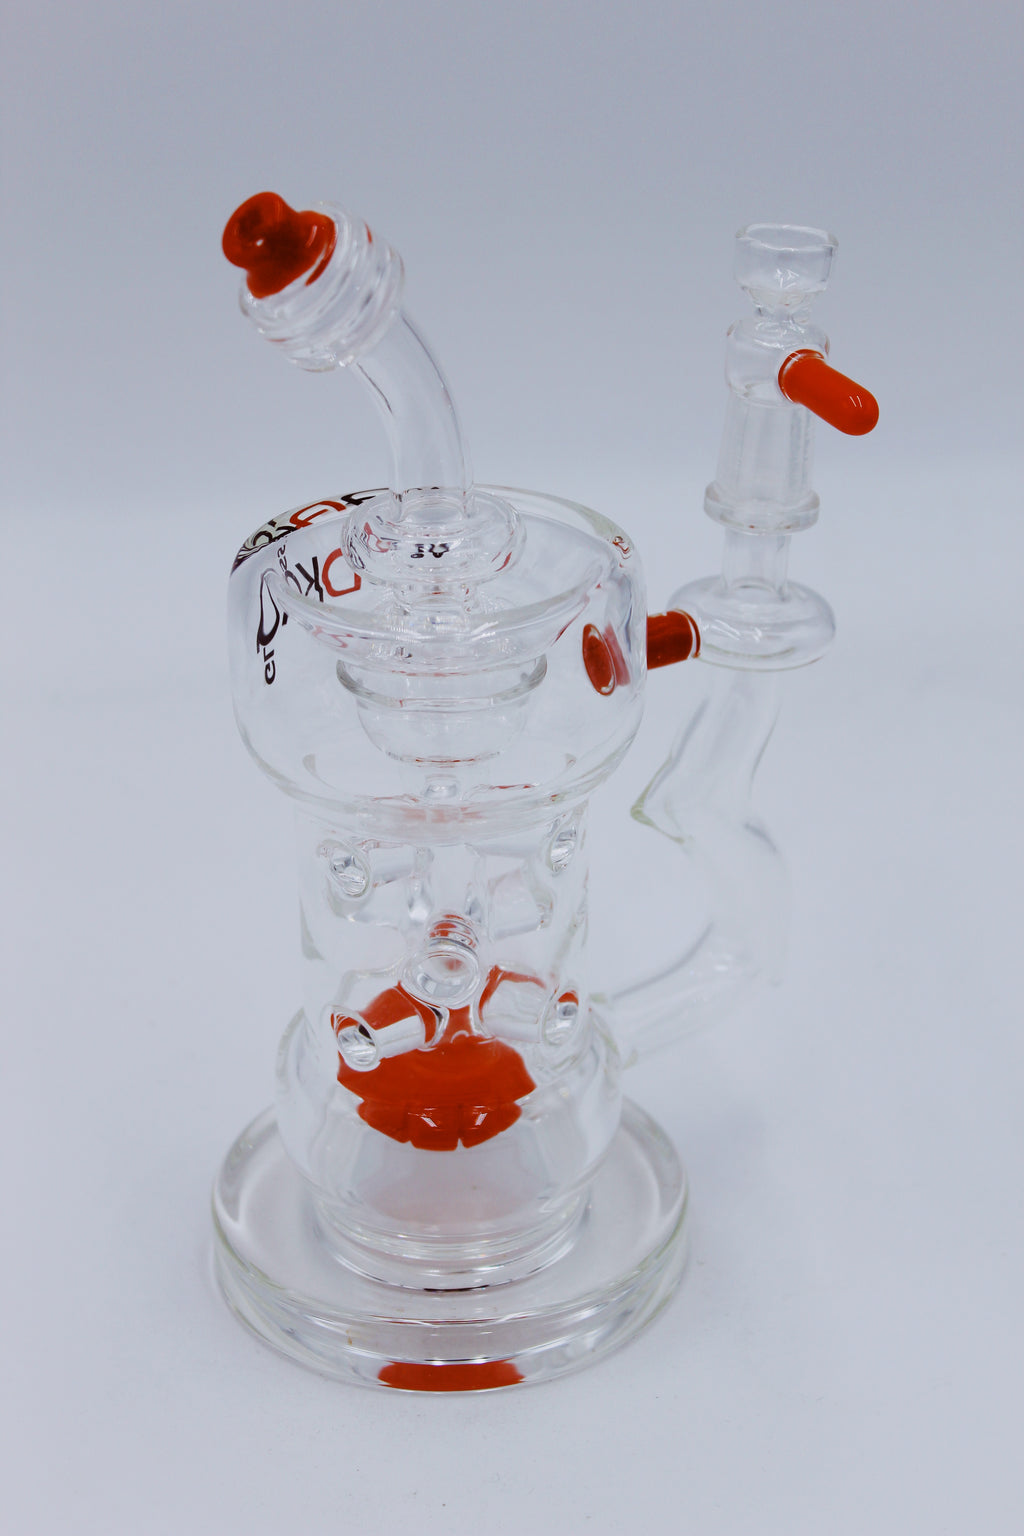 VODKA GLASS 9MM RIG - Smoke Country - Land of the artistic glass blown bongs